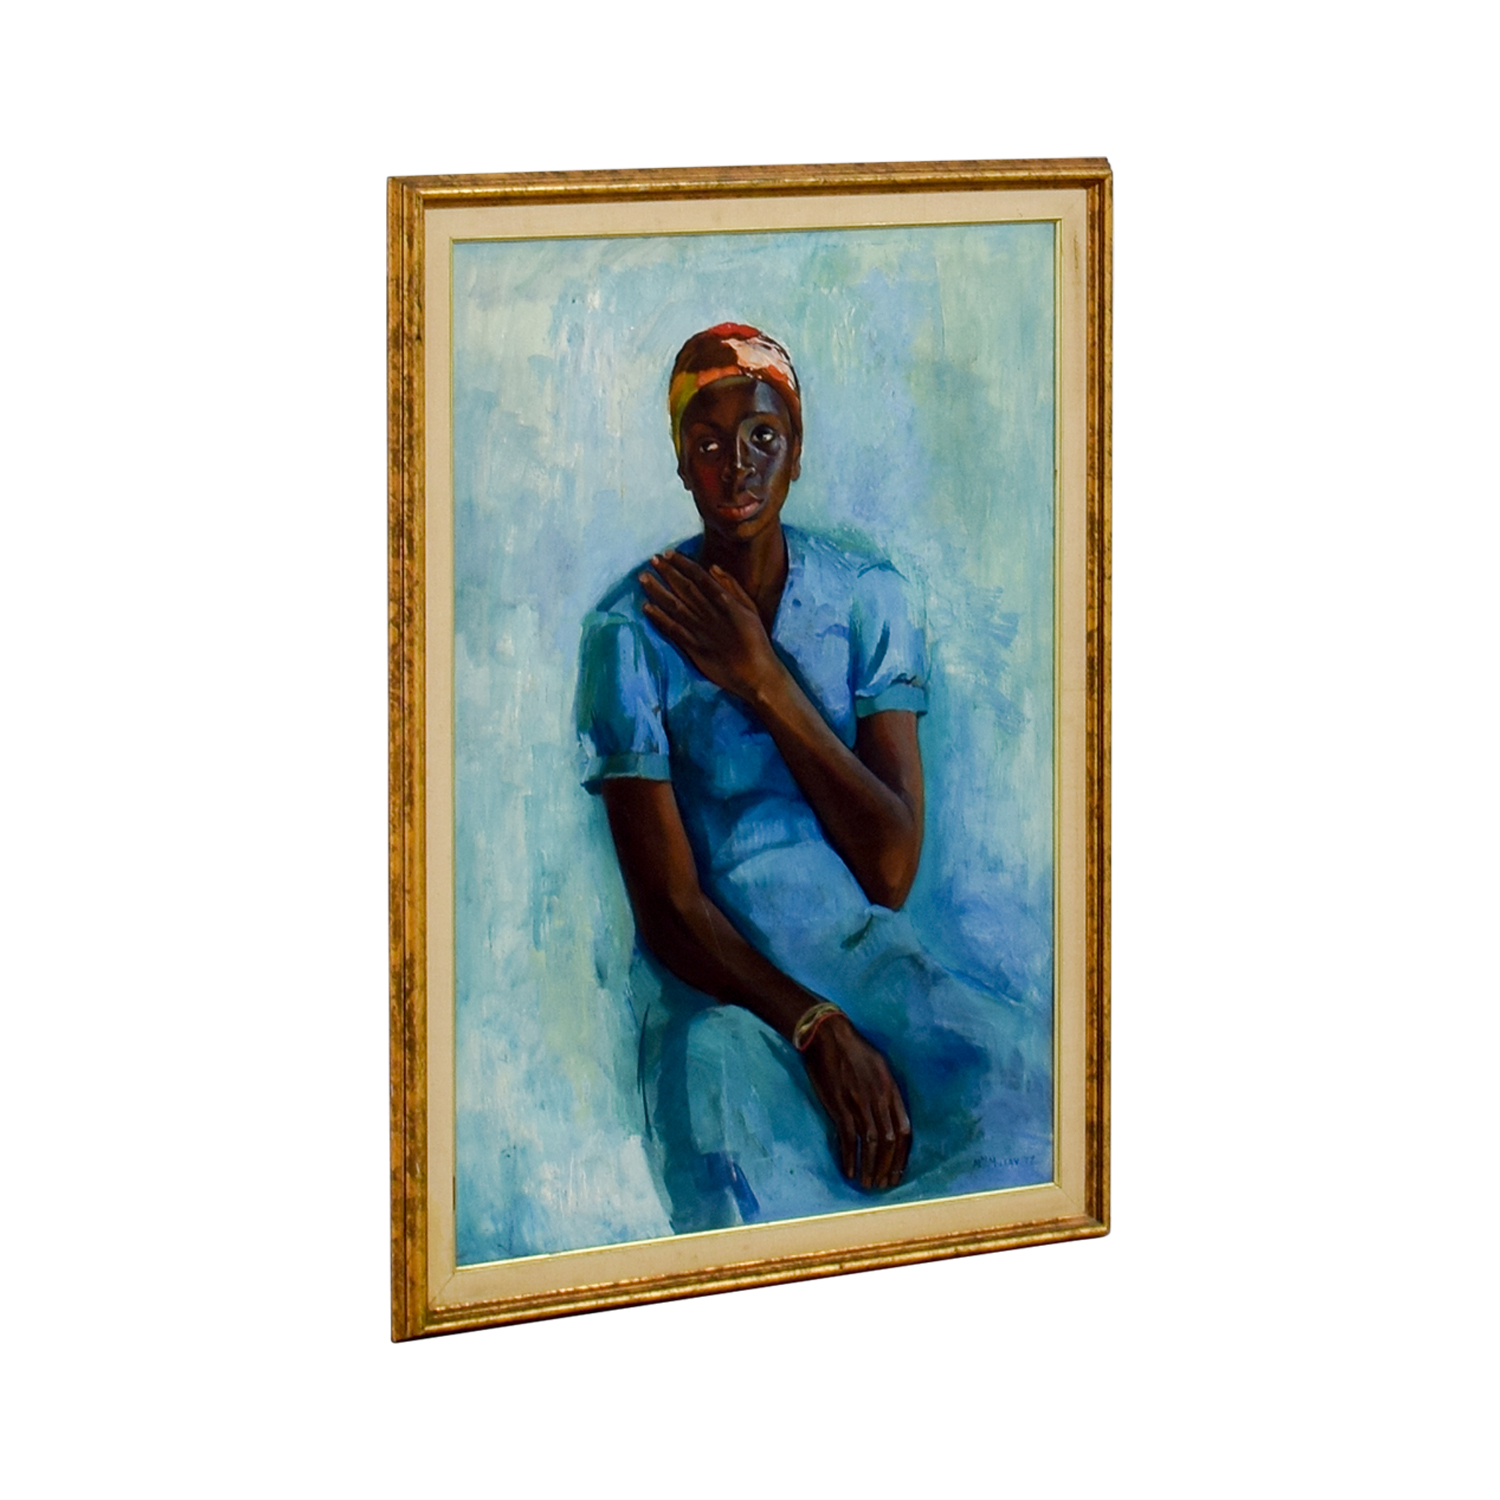 shop Woman in Blue Framed Print